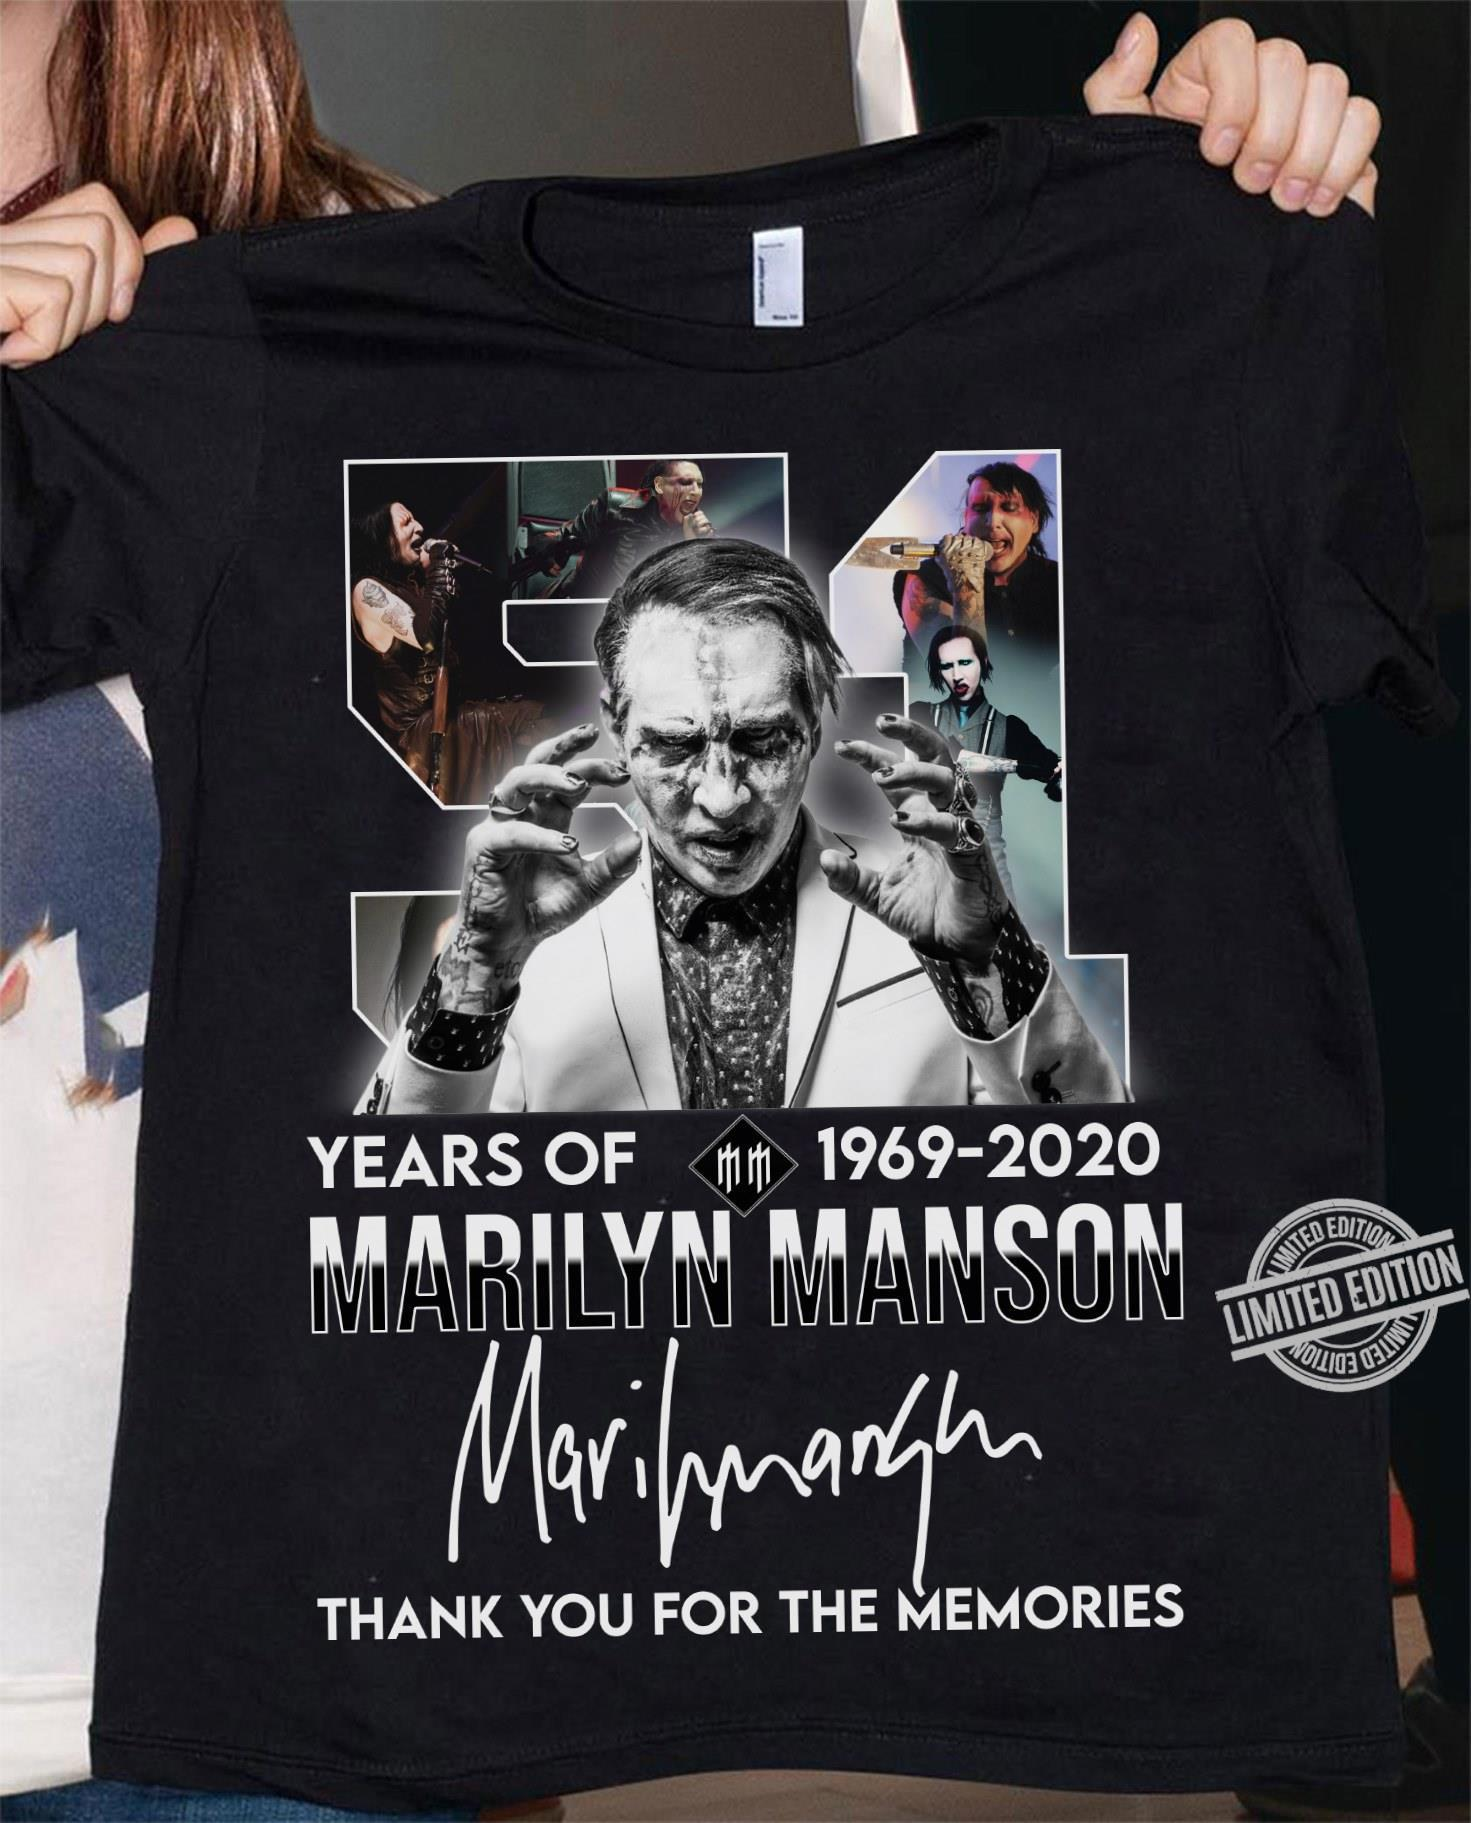 51 Years Of 1969 2020 Marilyn Manson Thank You For The Memories Shirt